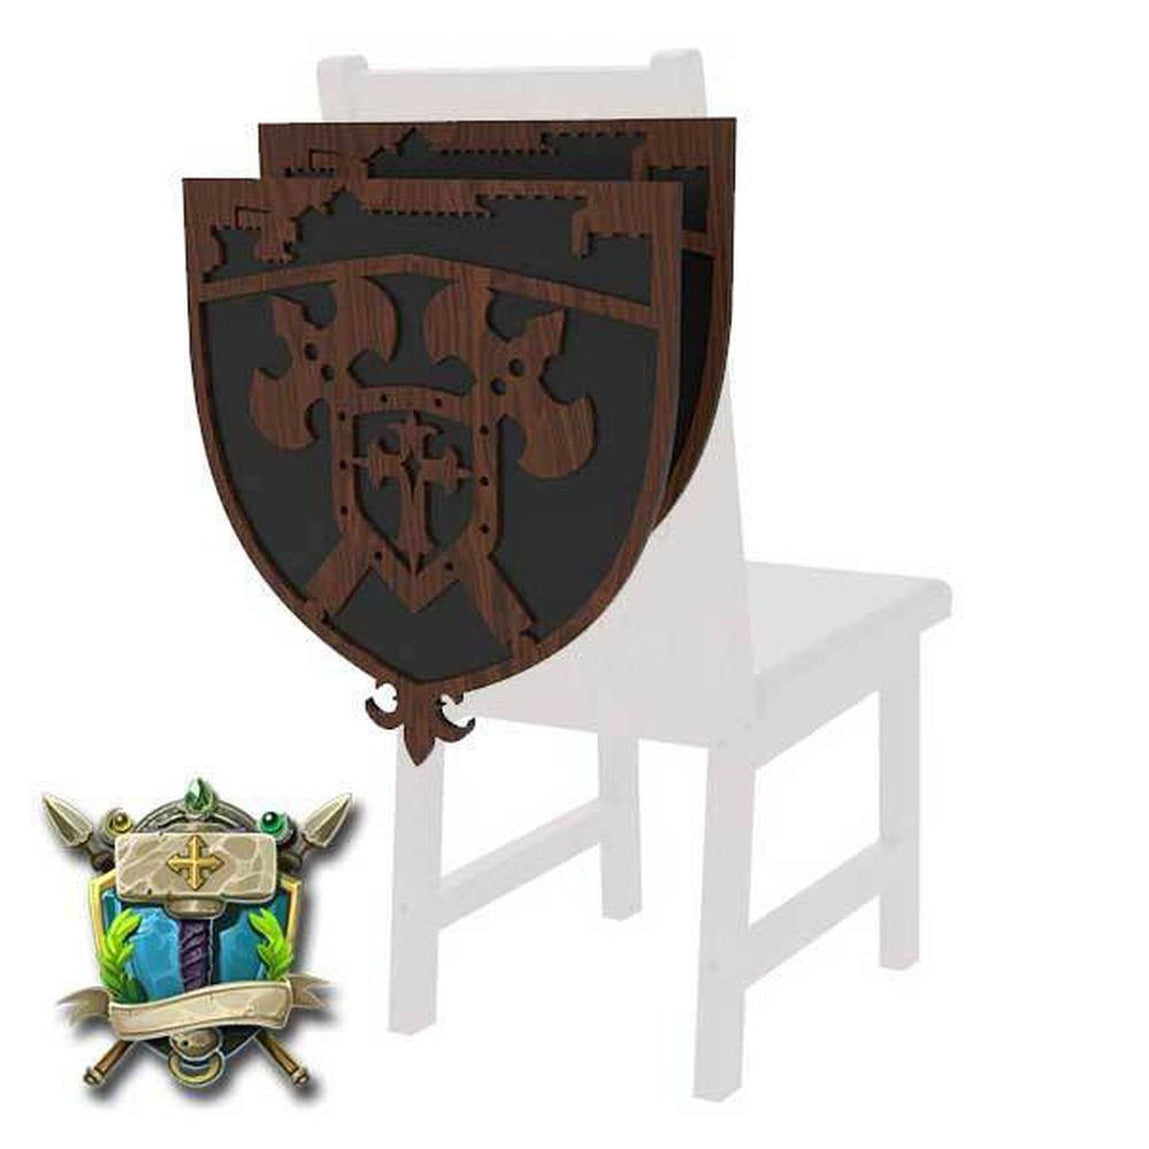 The knights chair